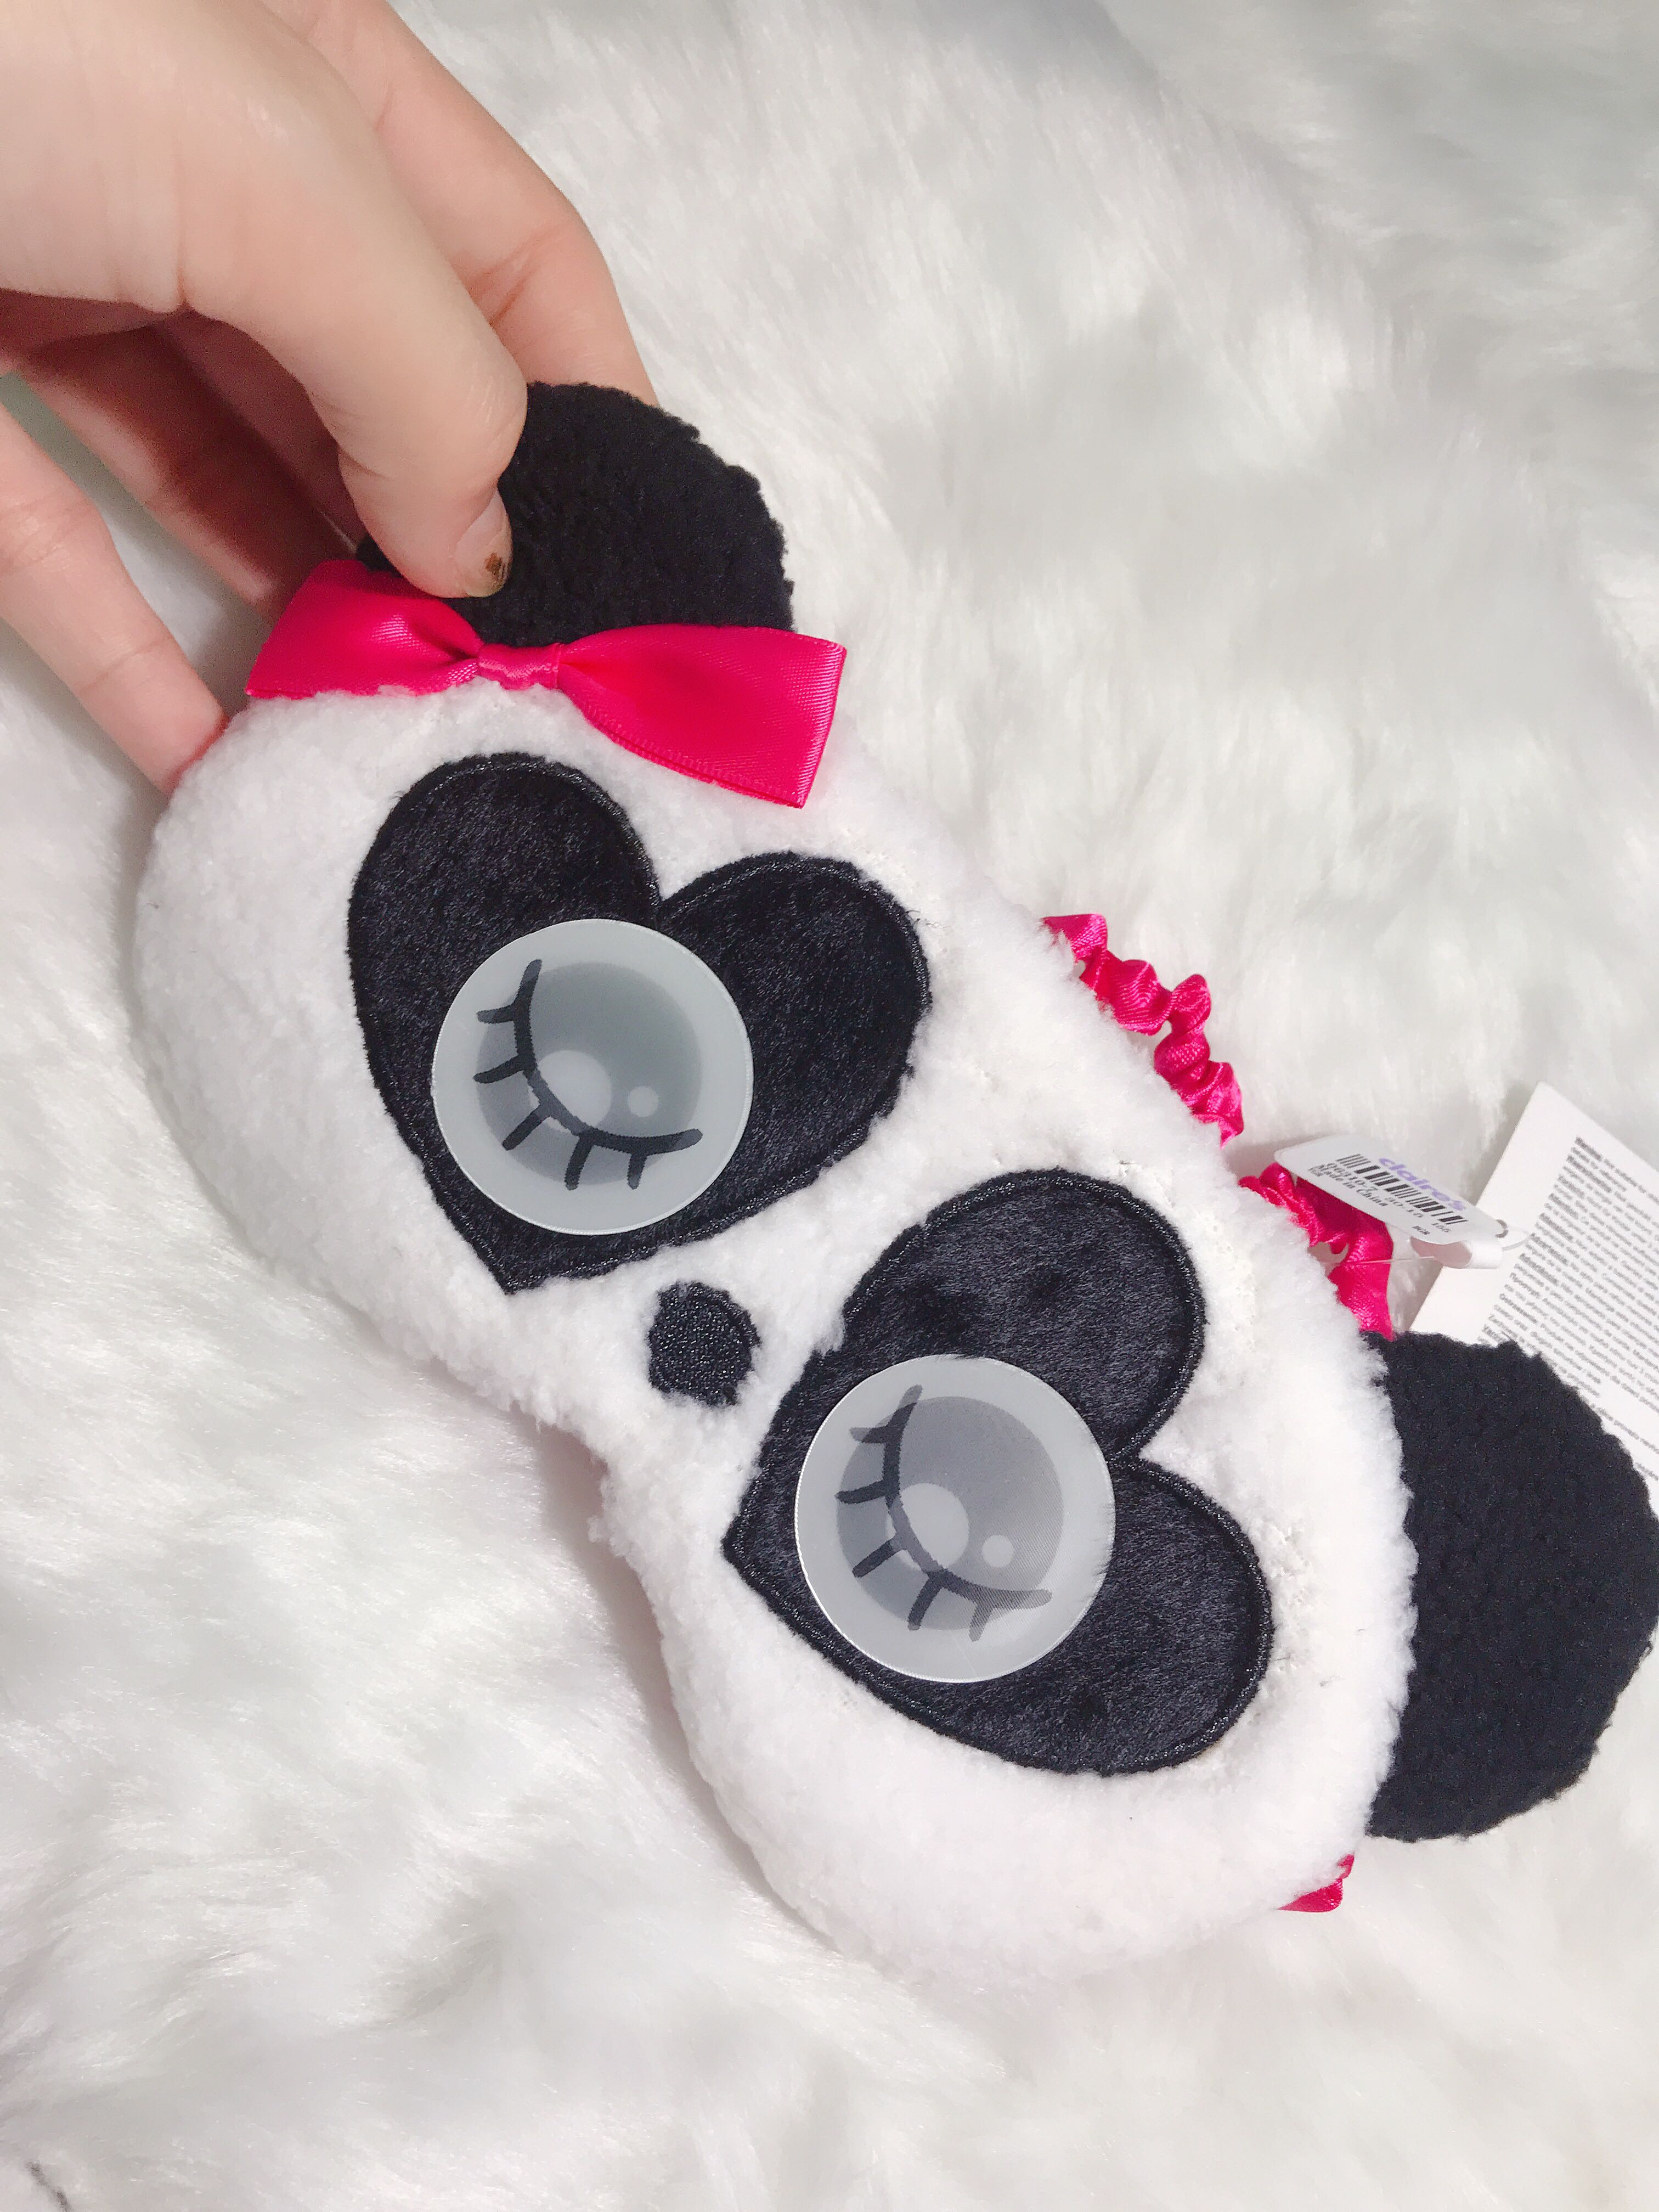 Claires cute black and white panda and pink base plane eye mask